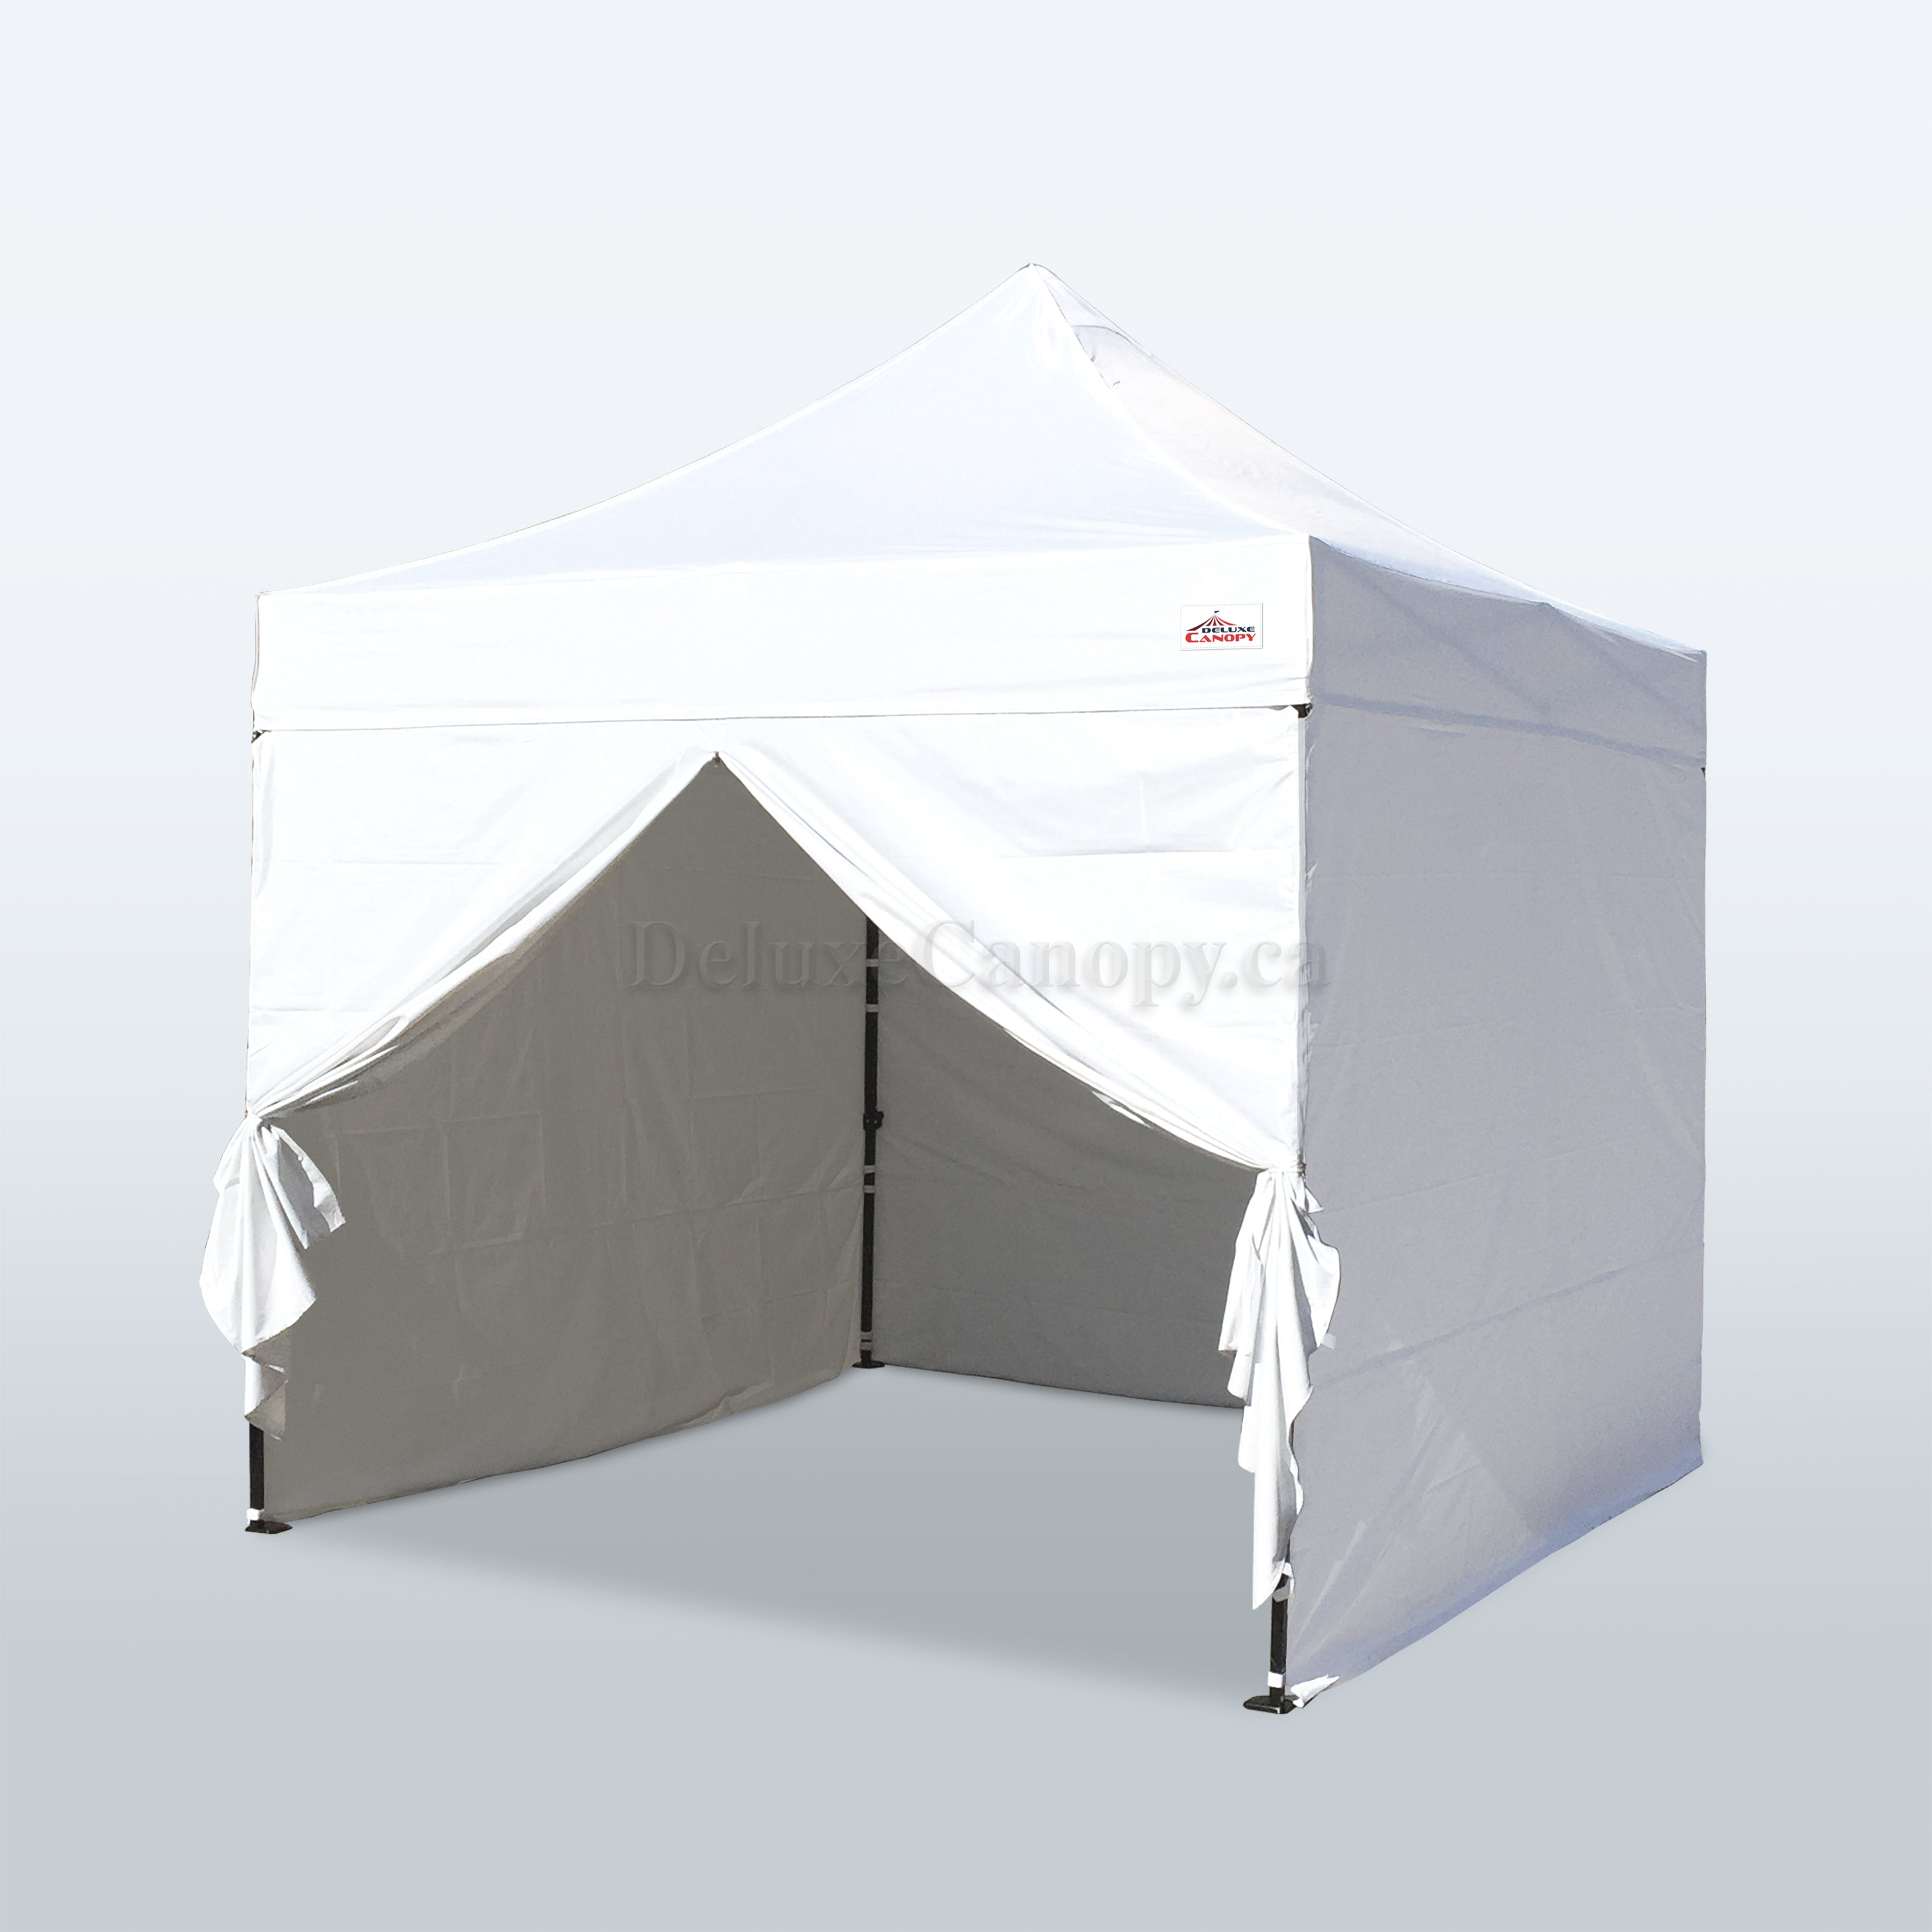 10x10 Pop Up Canopy Tent | Pro Series Gazebo Canopy Tent